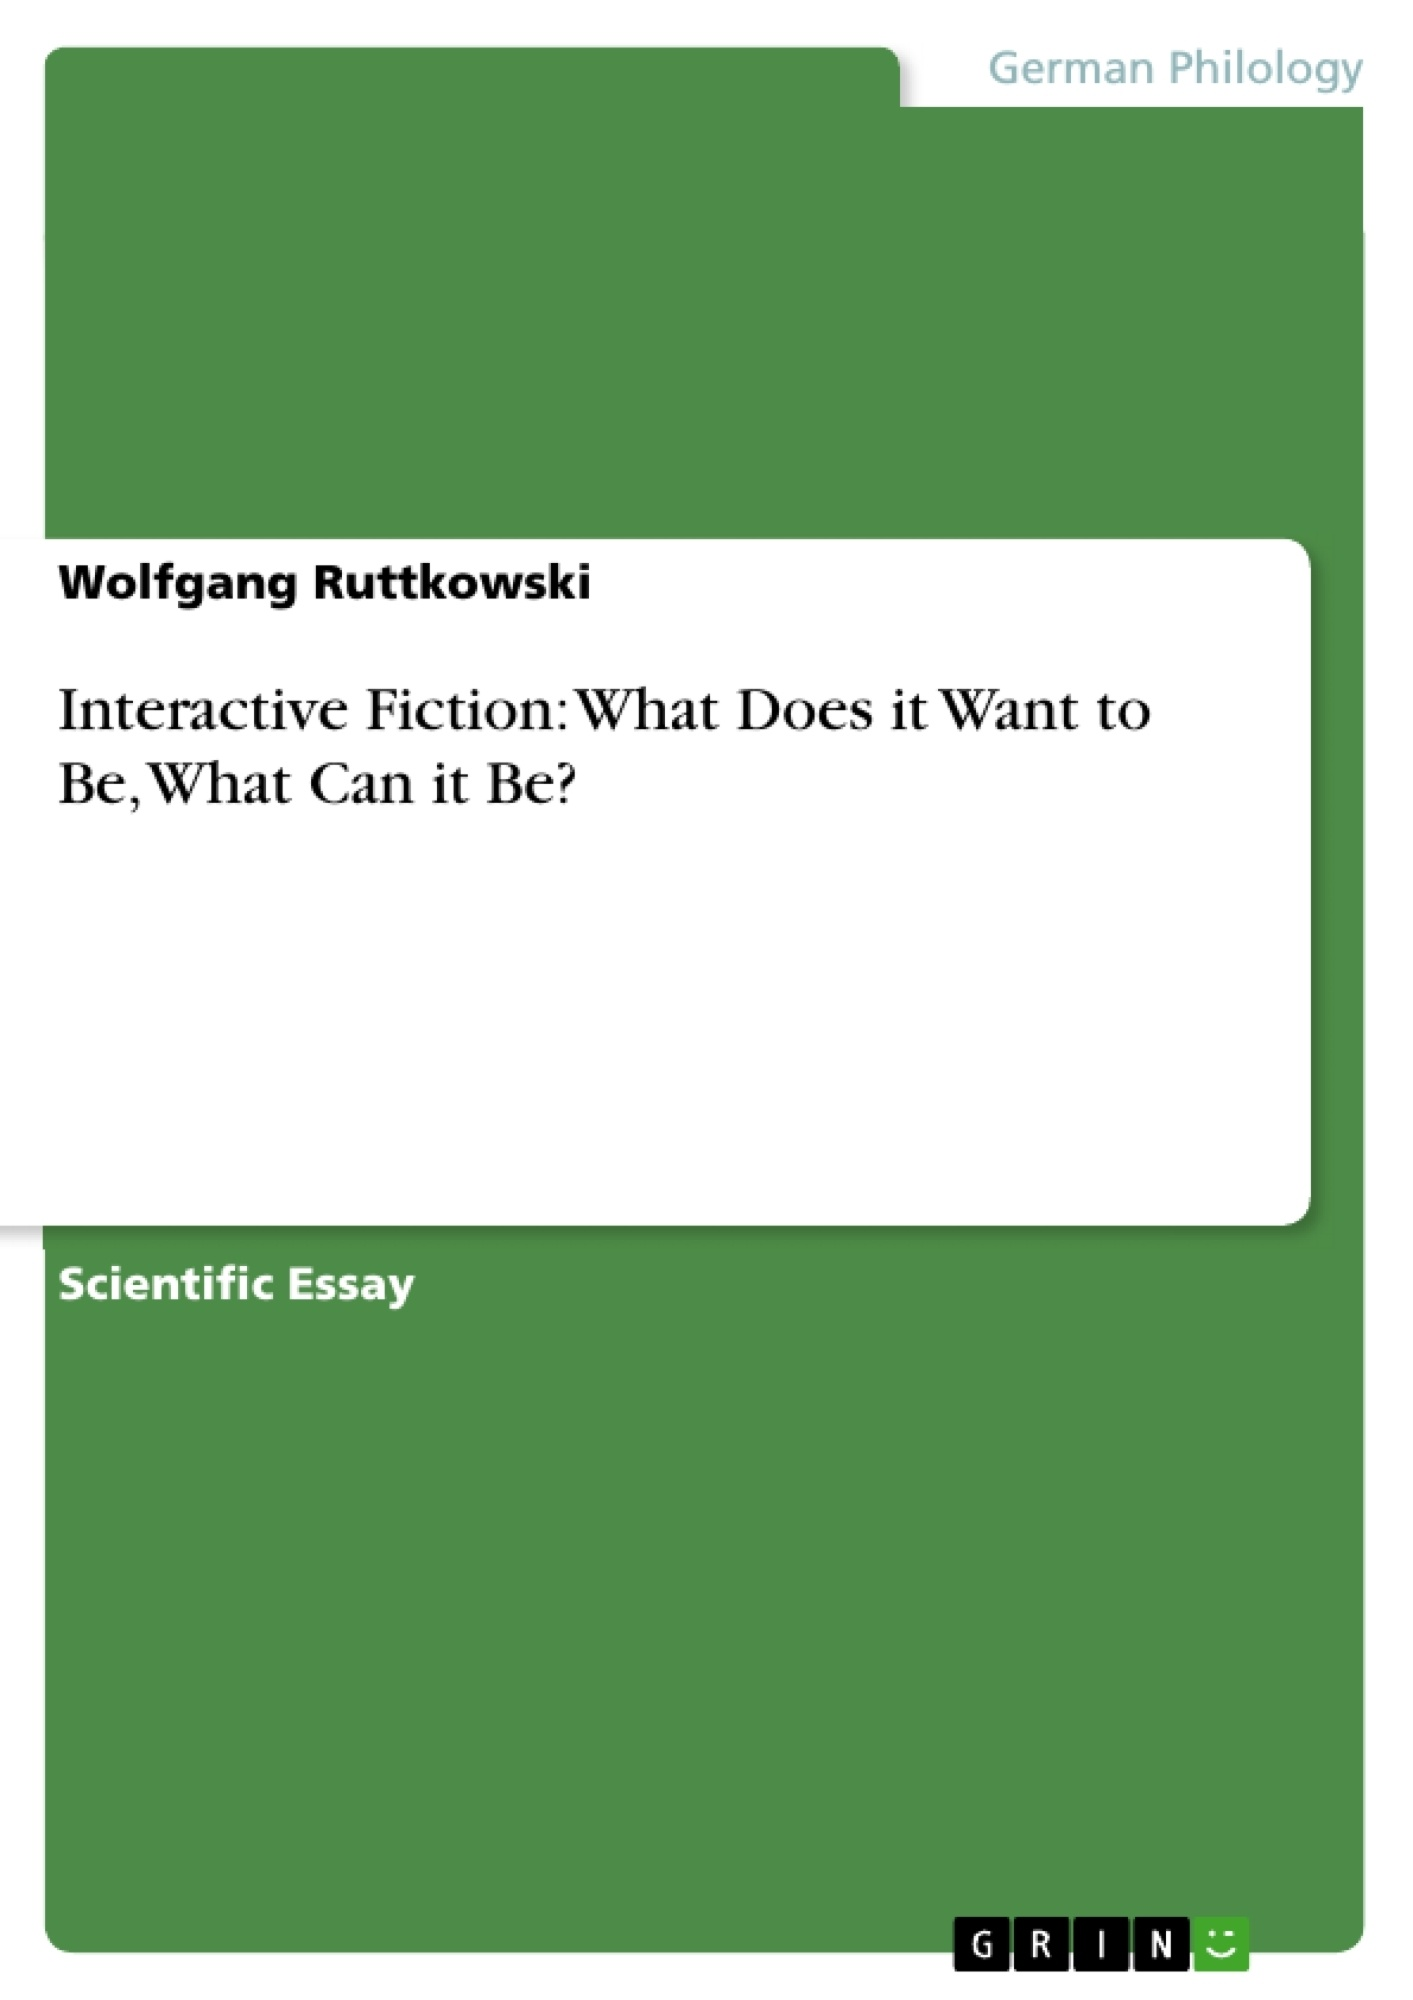 Title: Interactive Fiction: What Does it Want to Be, What Can it Be?